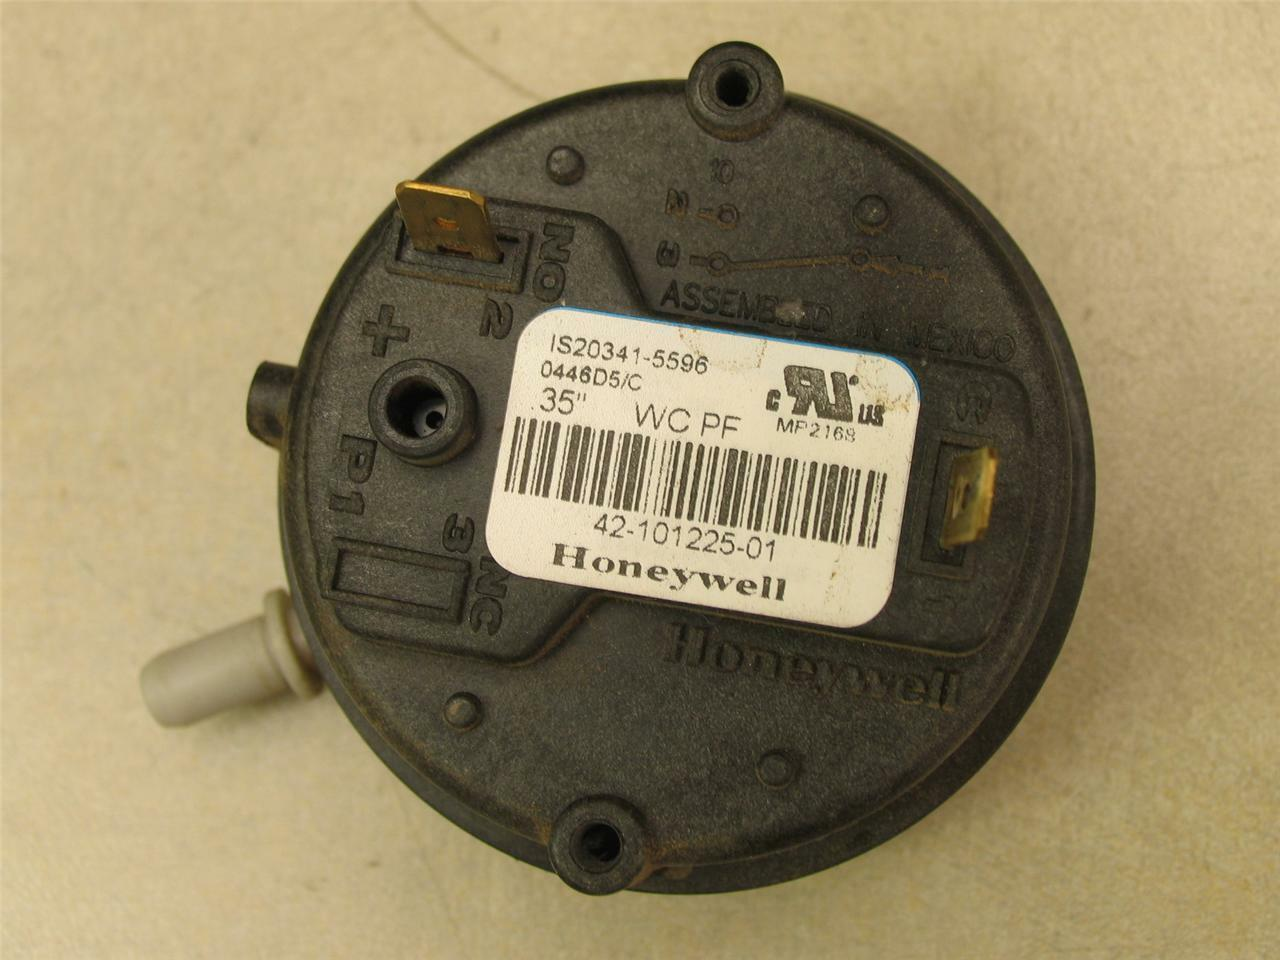 Honeywell 42 101225 01 Air Pressure Switch Is20341 5596 3500 Furnace 1013802 Oem Parts Icp Heil 1 Of 1free Shipping